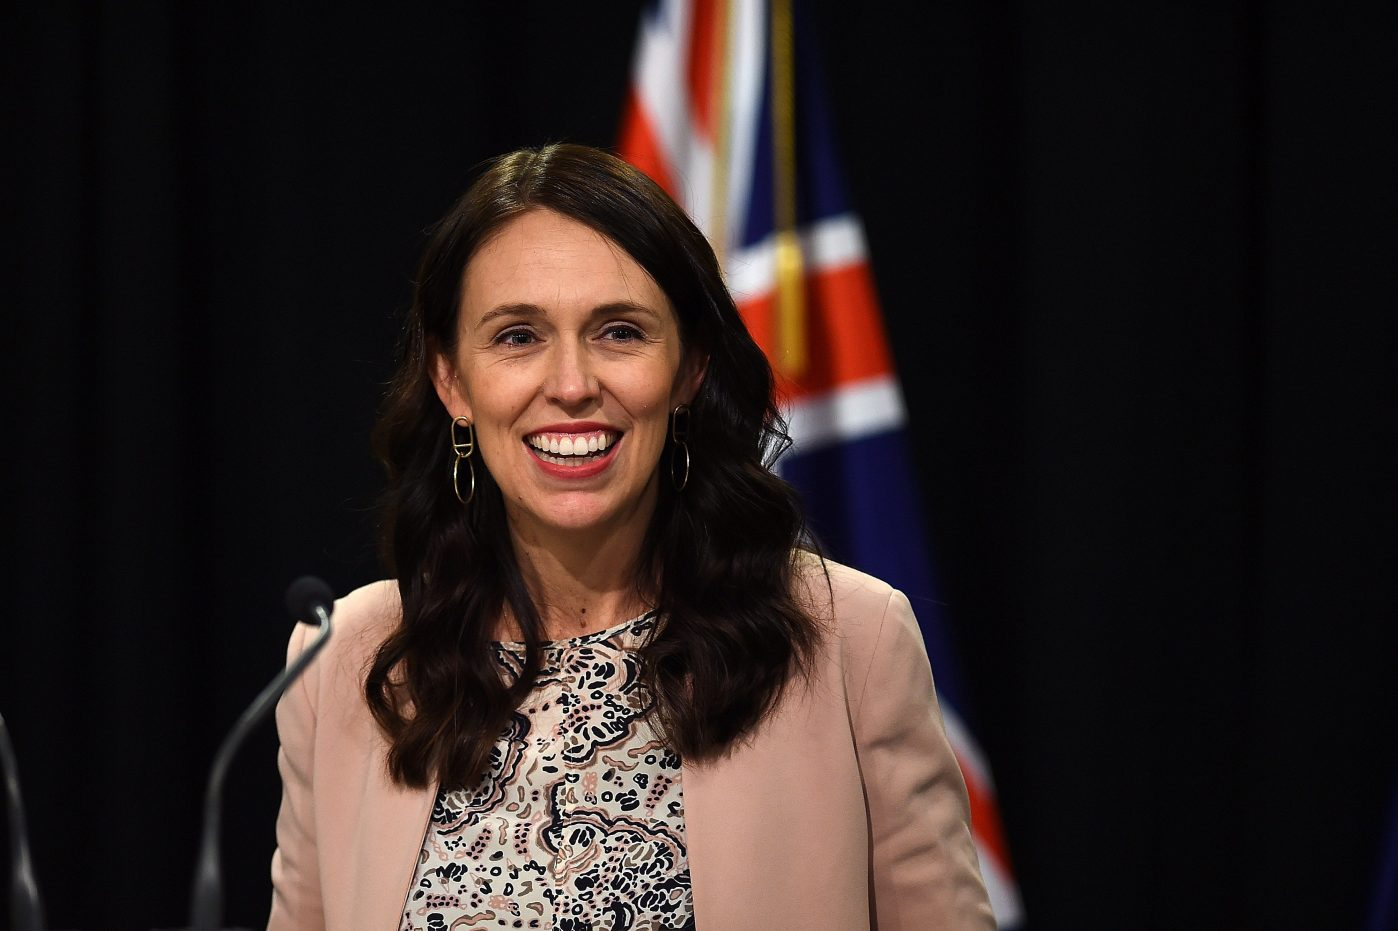 New Zealand's PM Jacinda Arden restart campaign with holiday promise